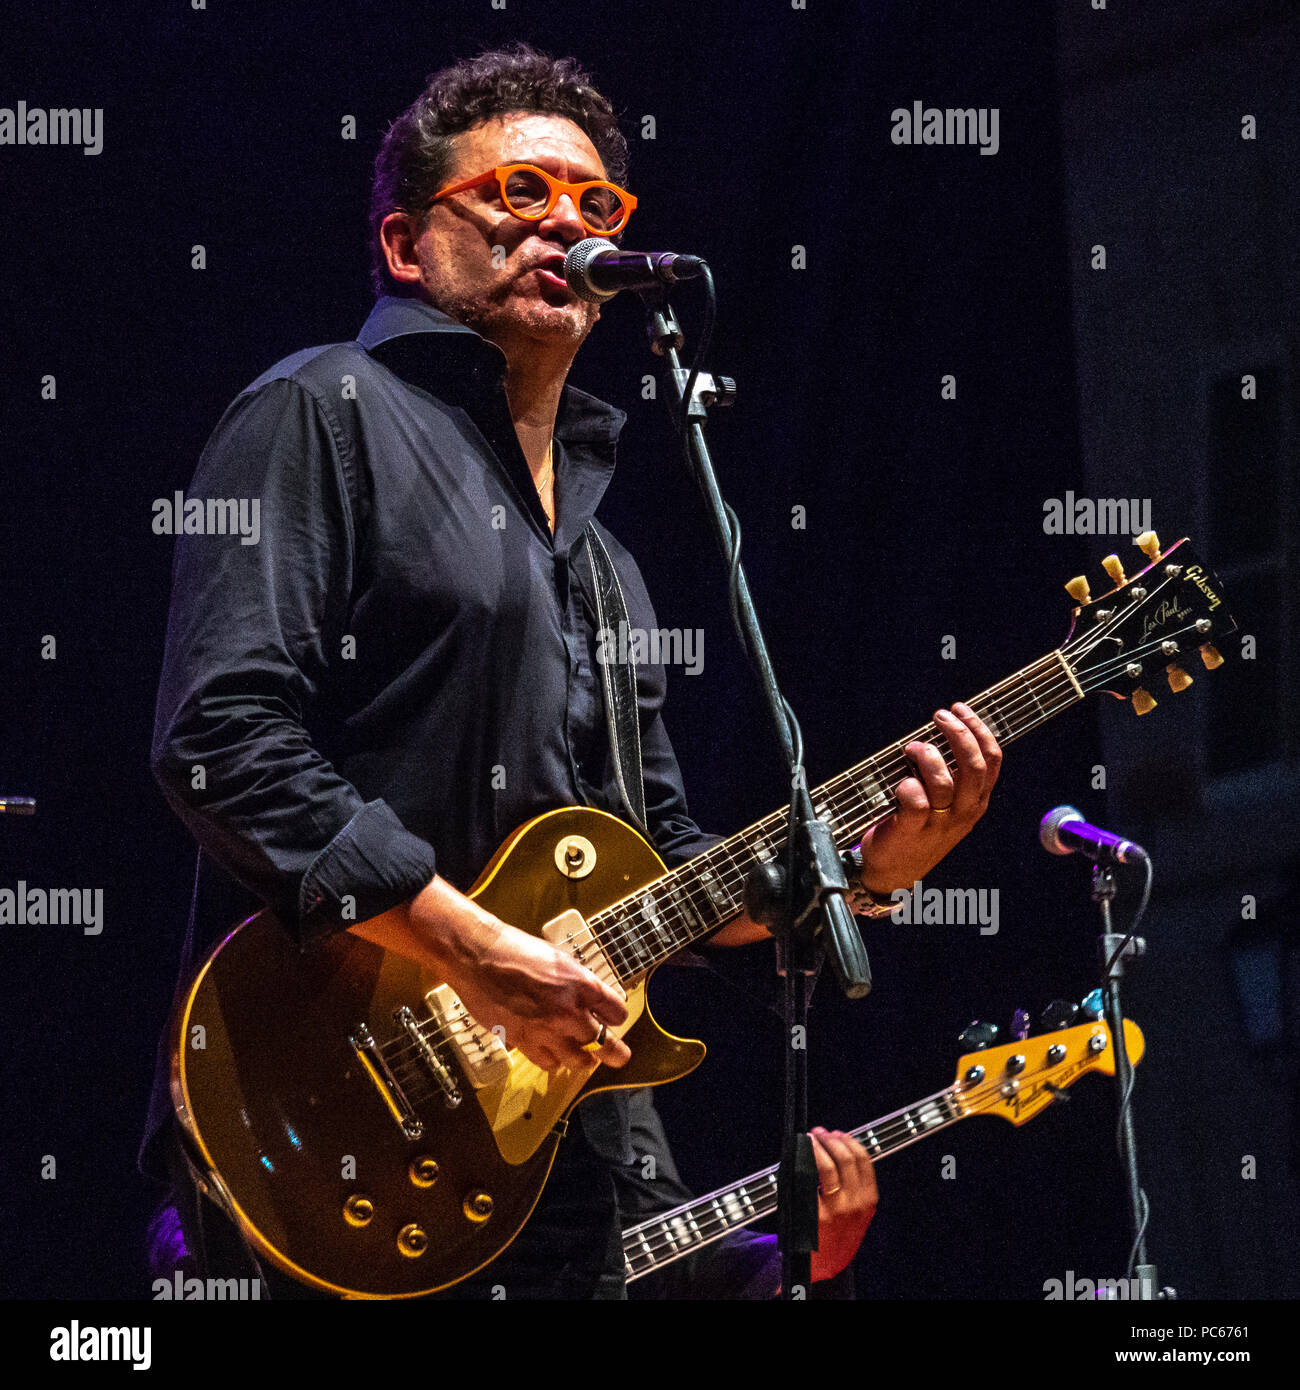 Trieste, Italy, 31 July 2018.  Mike Sponza in concert presenting his new album 'Made in the Sixties' in an open air, free concert at Trieste's piazza Verdi. Photo by Enrique Shore Credit: Enrique Shore/Alamy Live News - Stock Image